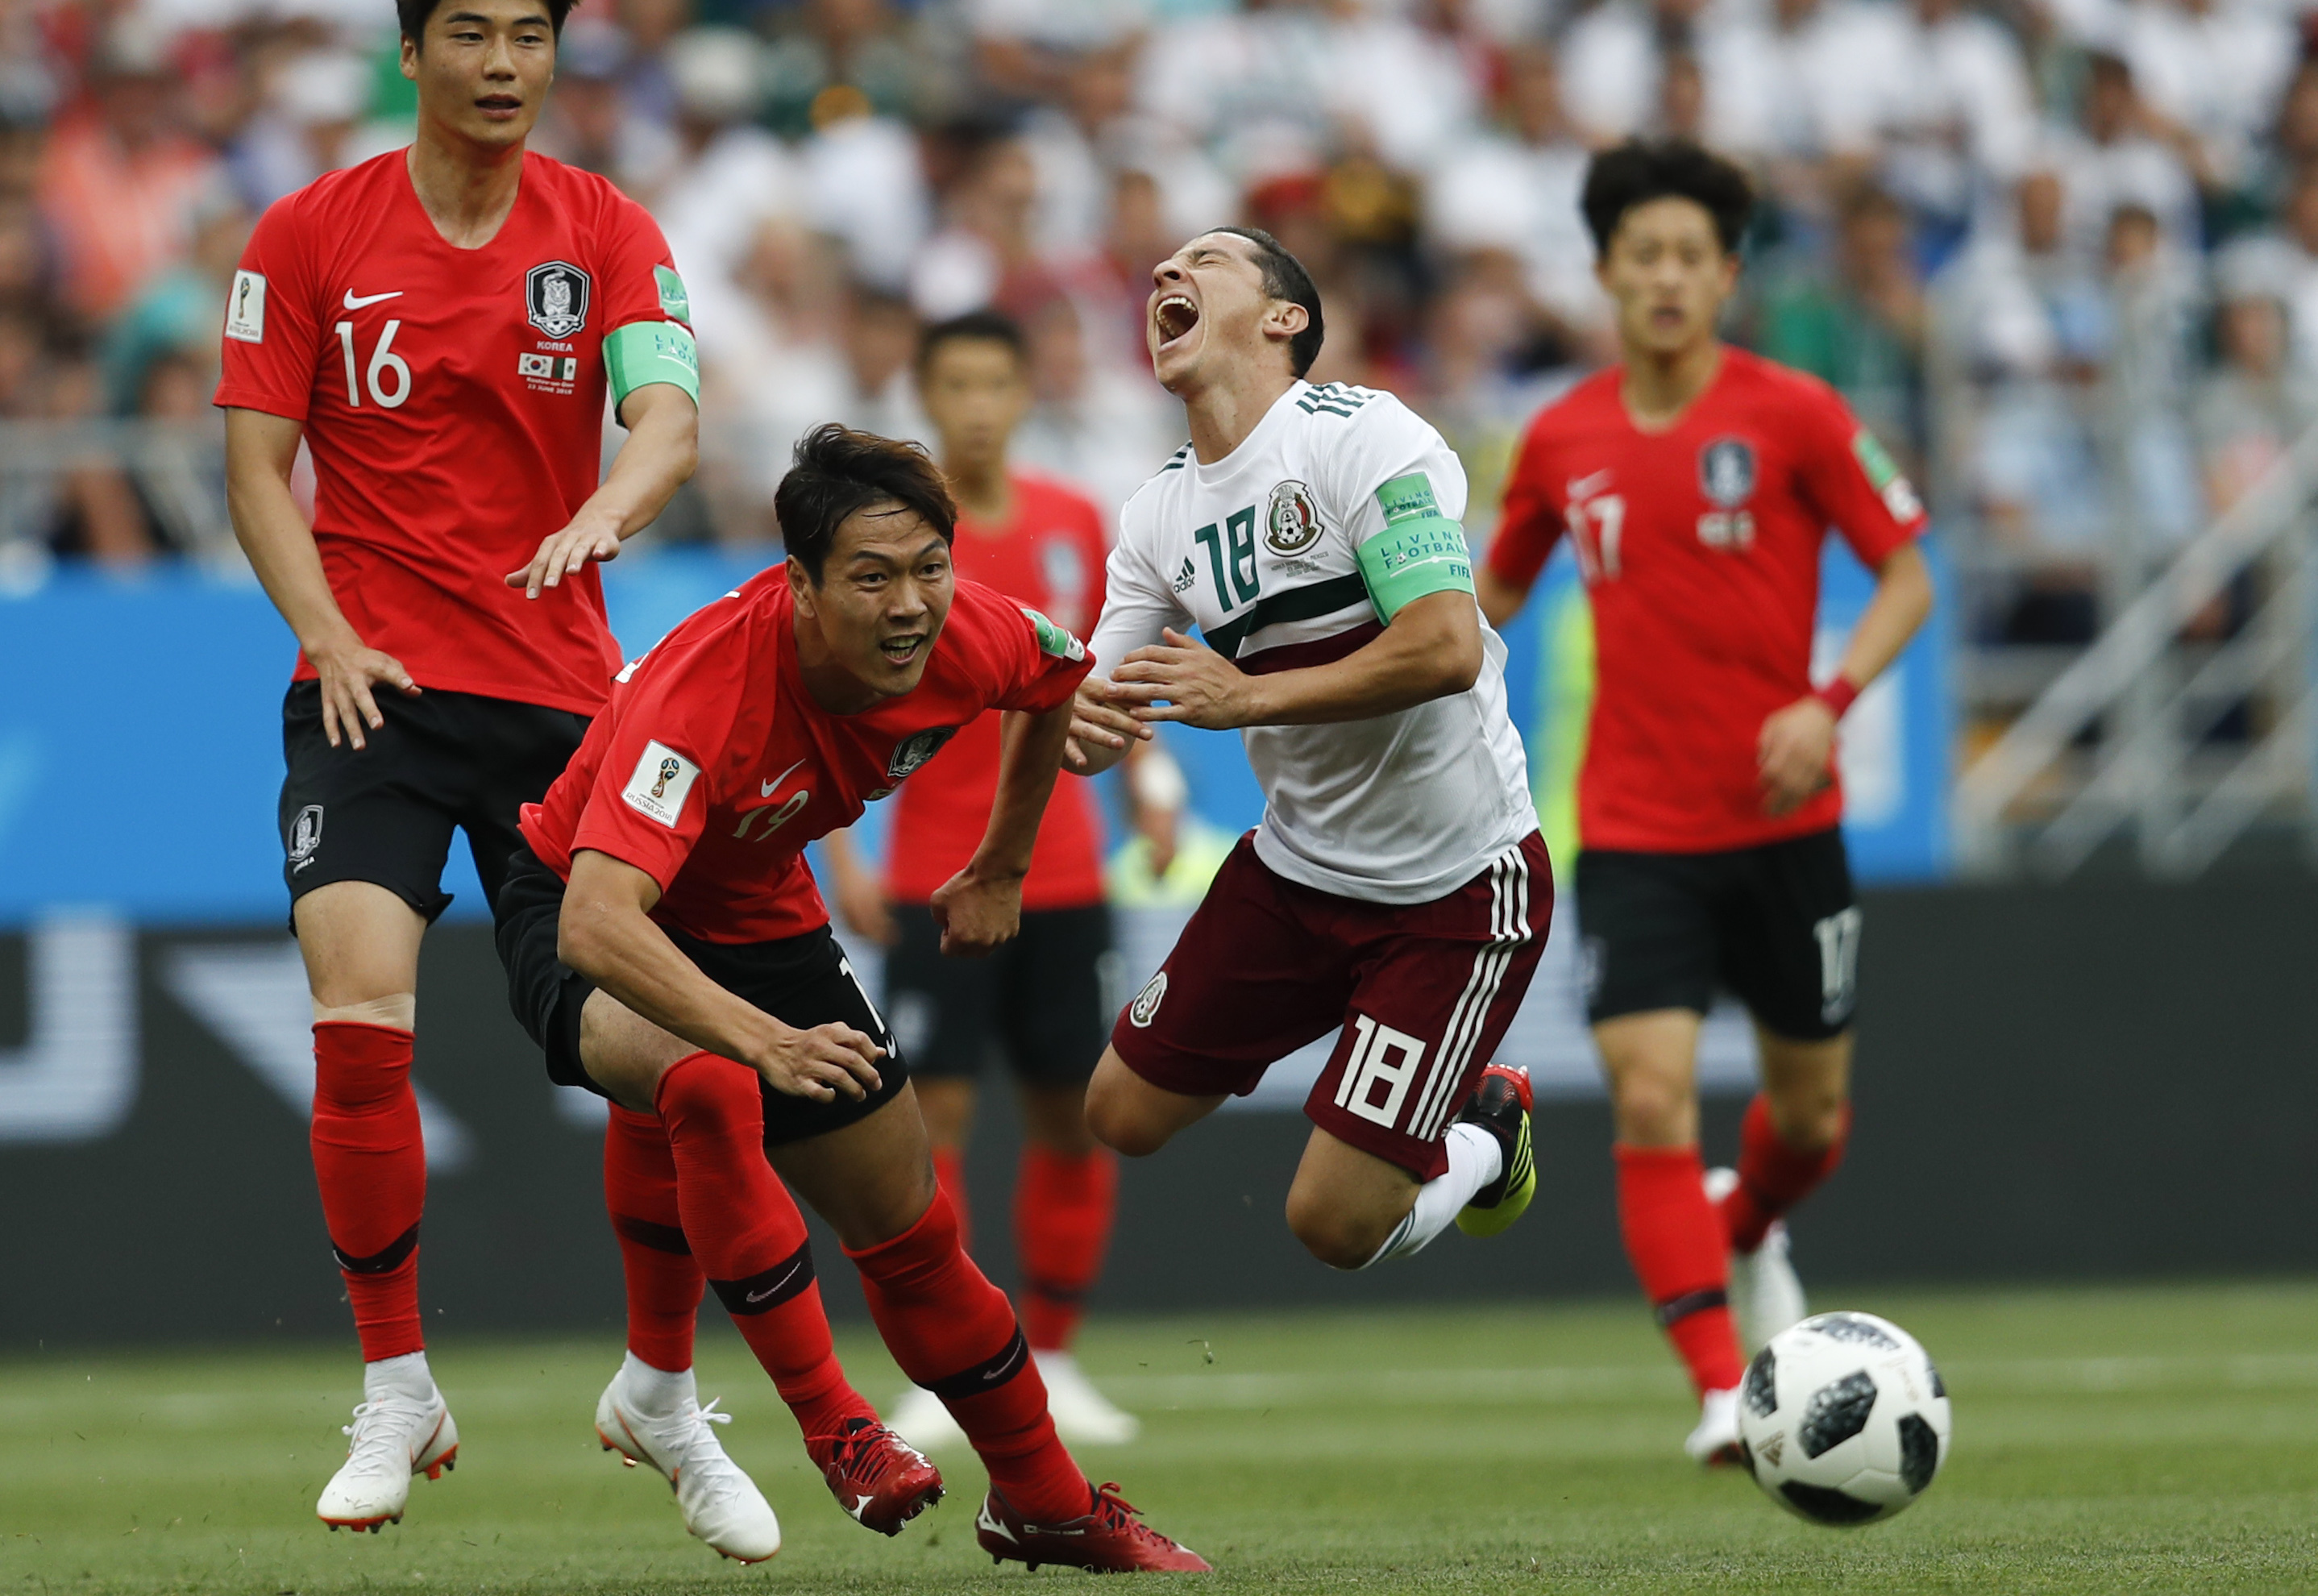 <div class='meta'><div class='origin-logo' data-origin='none'></div><span class='caption-text' data-credit='Eduardo Verdugo/AP Photo'>Mexico's Andres Guardado, right, challenges for the ball with South Korea's Kim Young-gwon during the group F match in the Rostov Arena on June 23.</span></div>